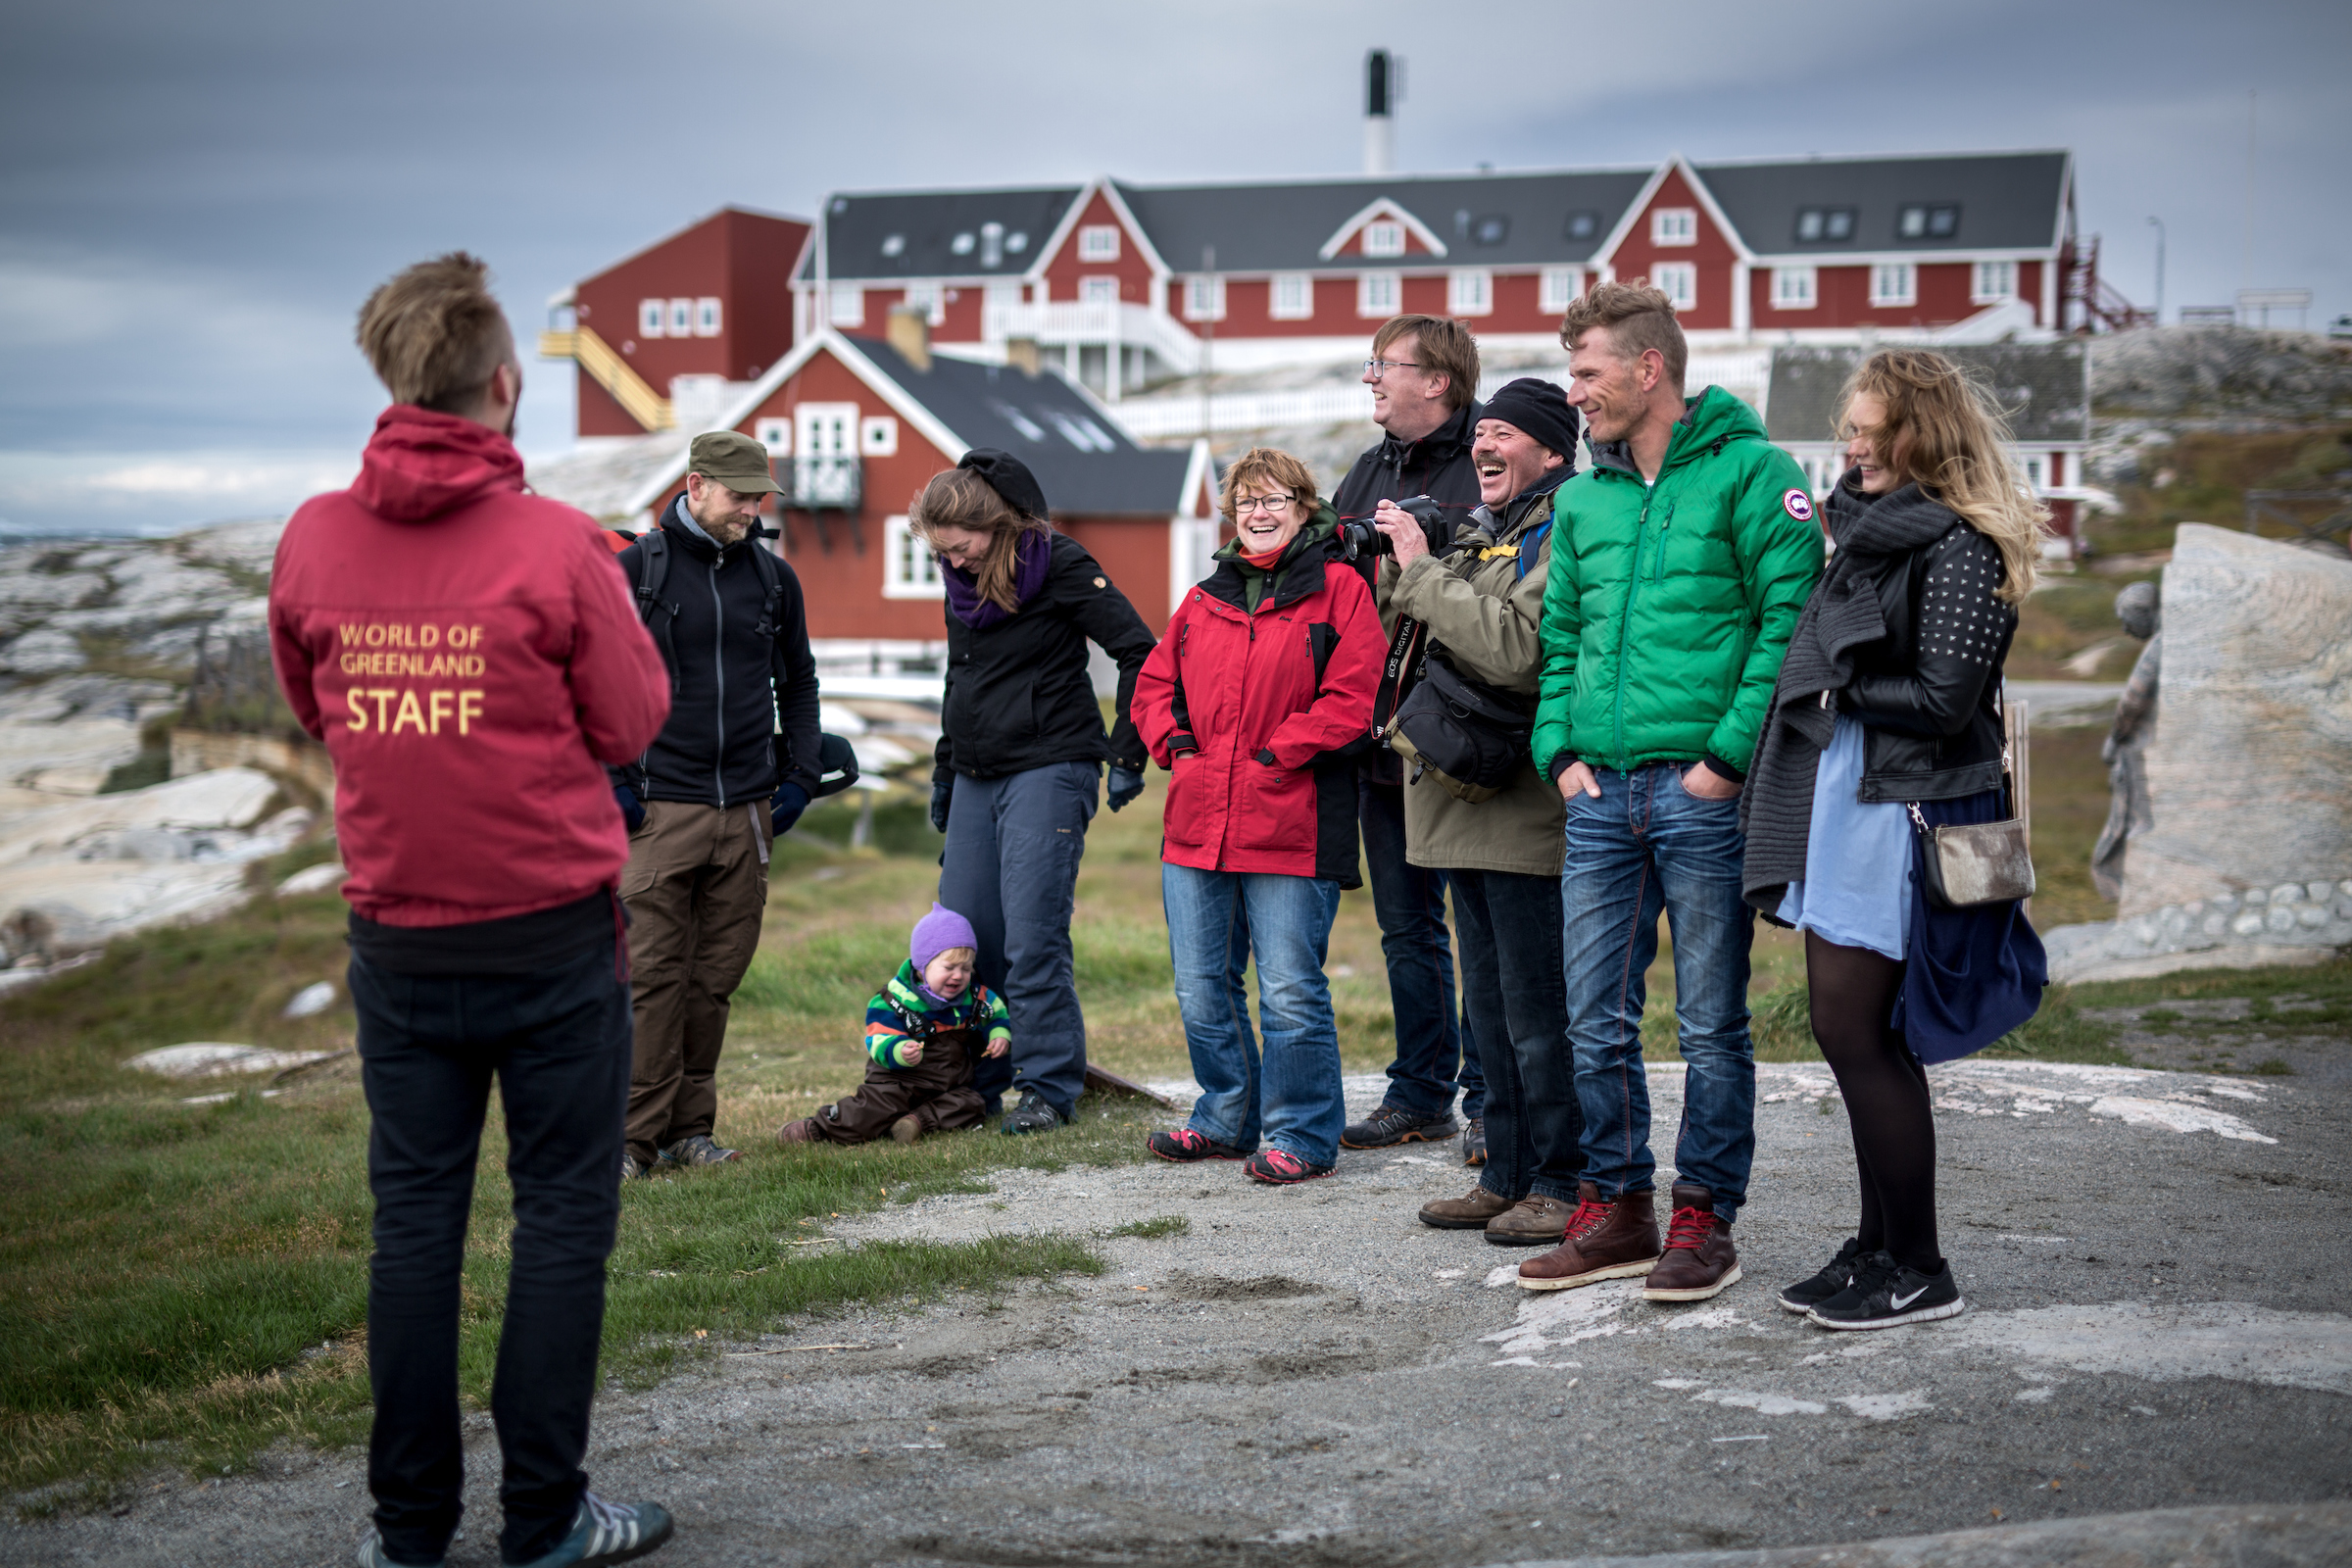 A tour guide entertaining guests on a town walk in Ilulissat in Greenland. By Mads Pihl